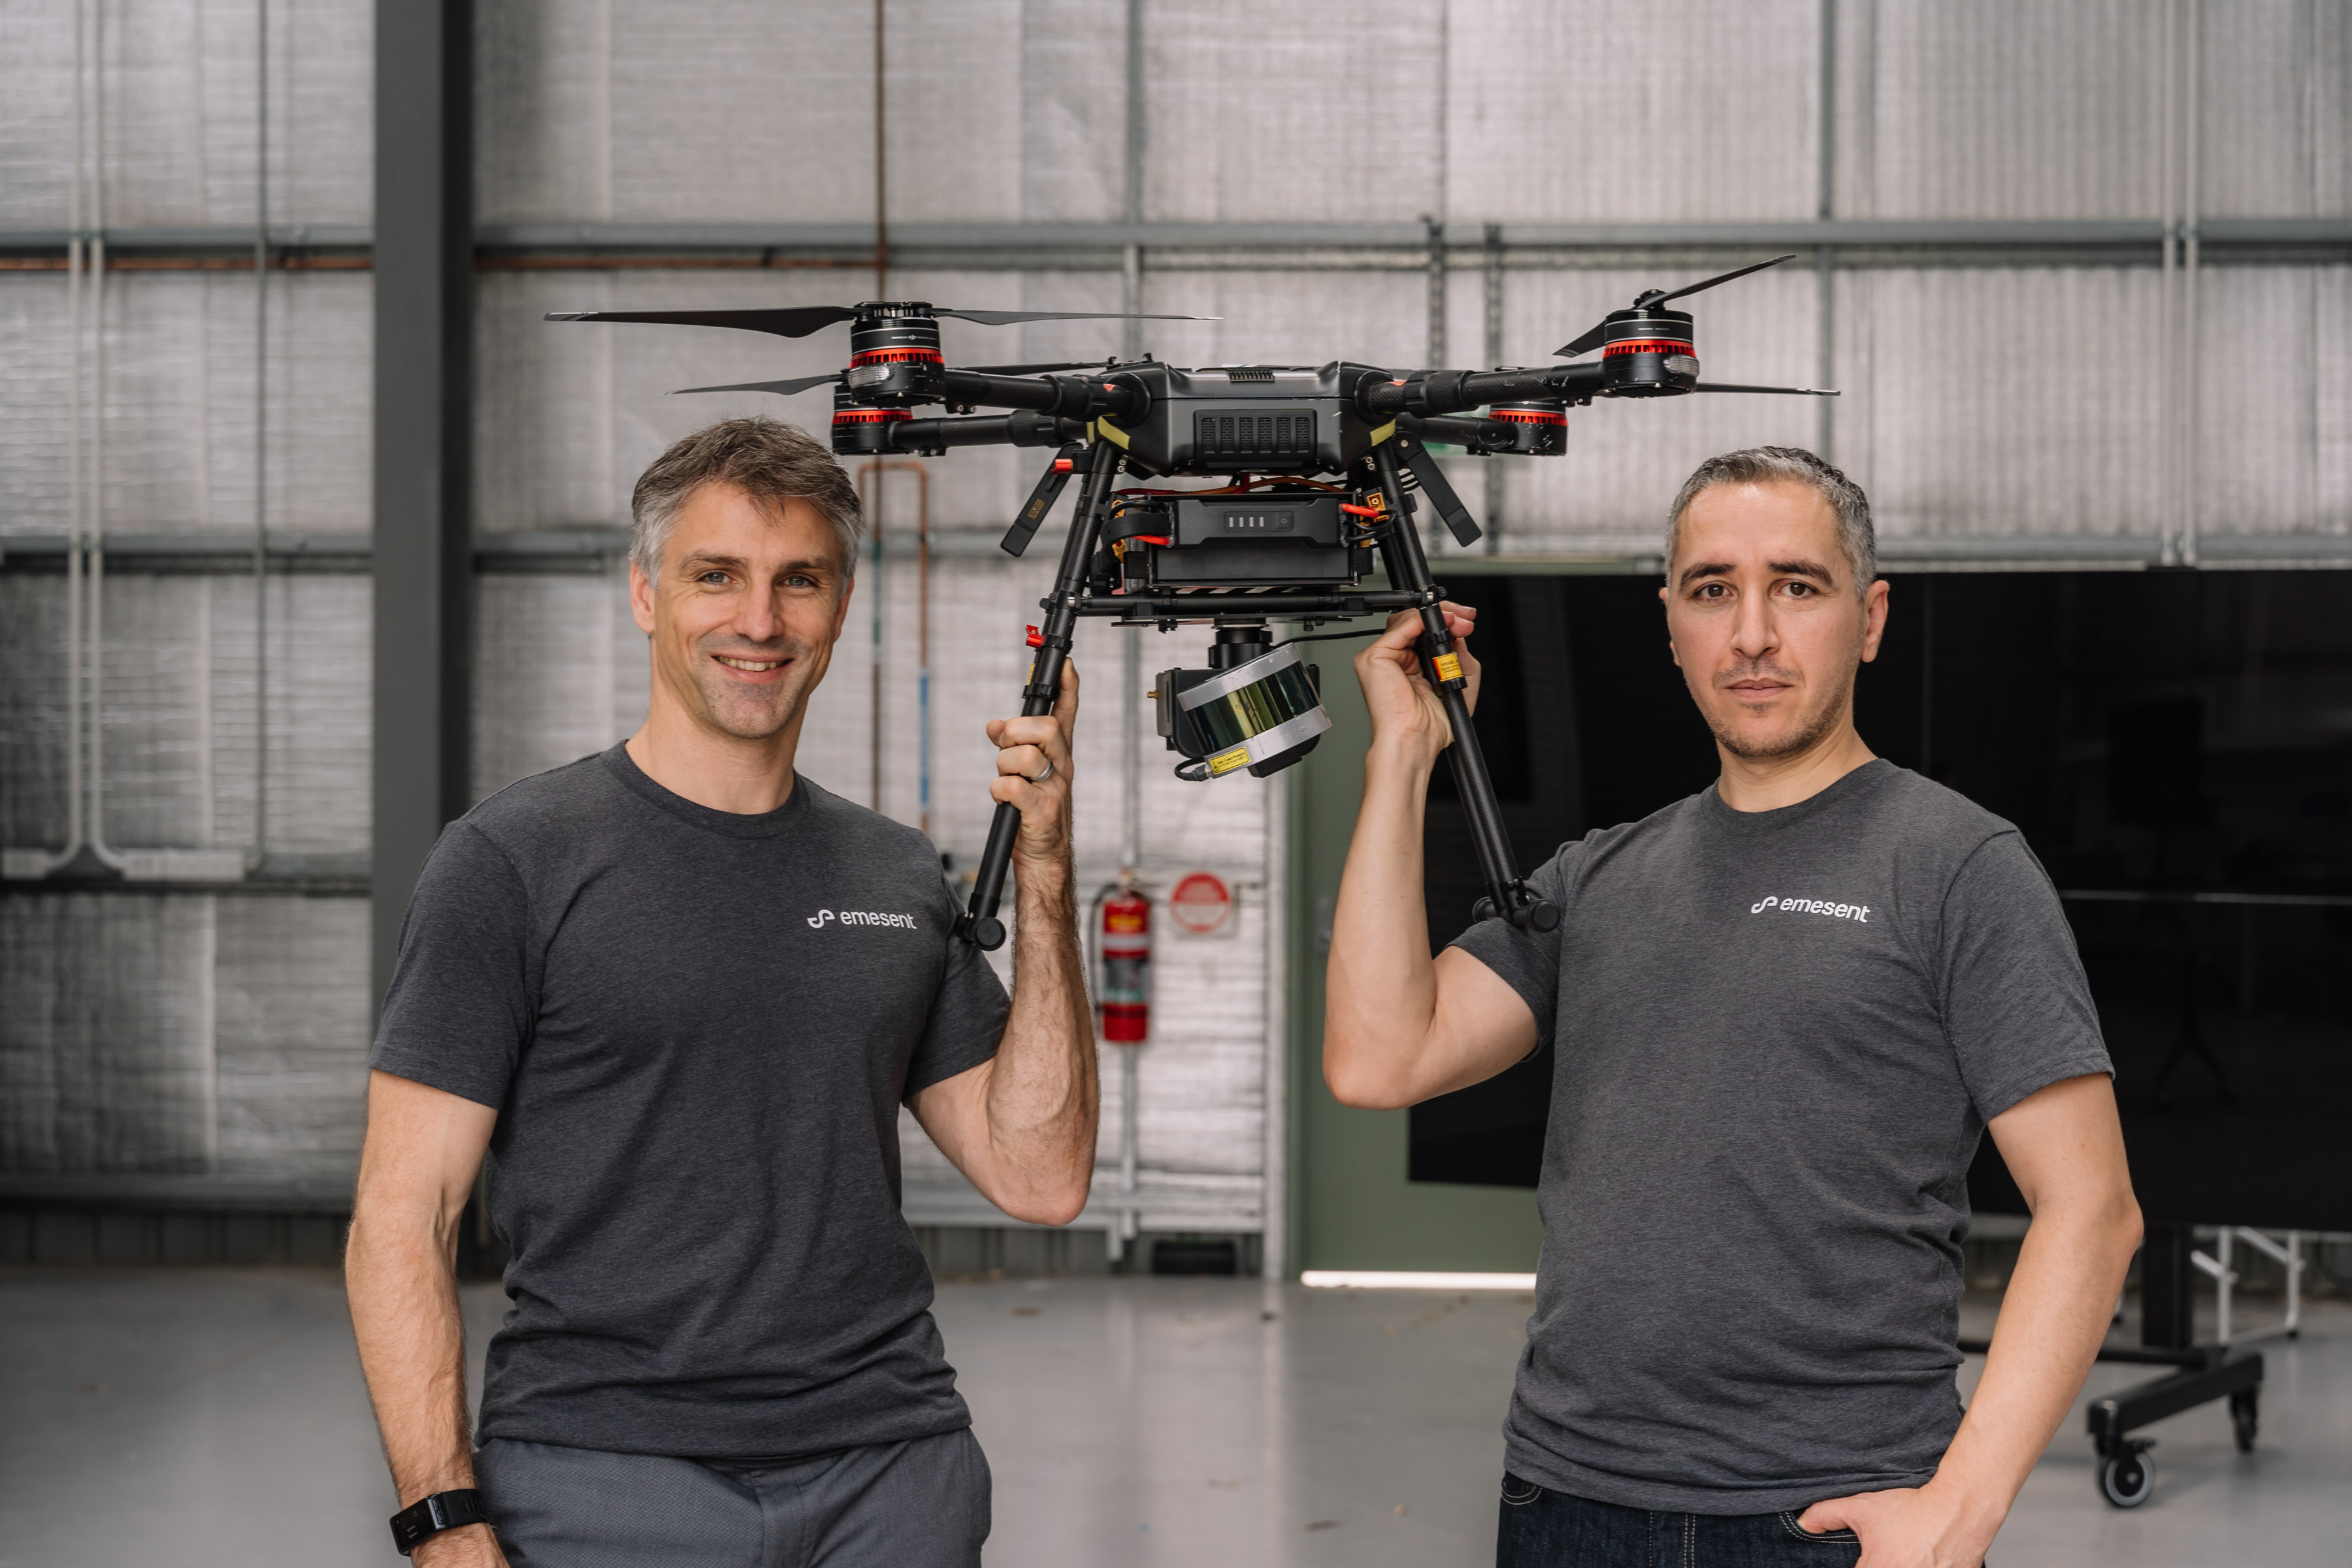 Emesent co-founders Stefan Hrabar and Farid Kendoul holding up a drone between them.